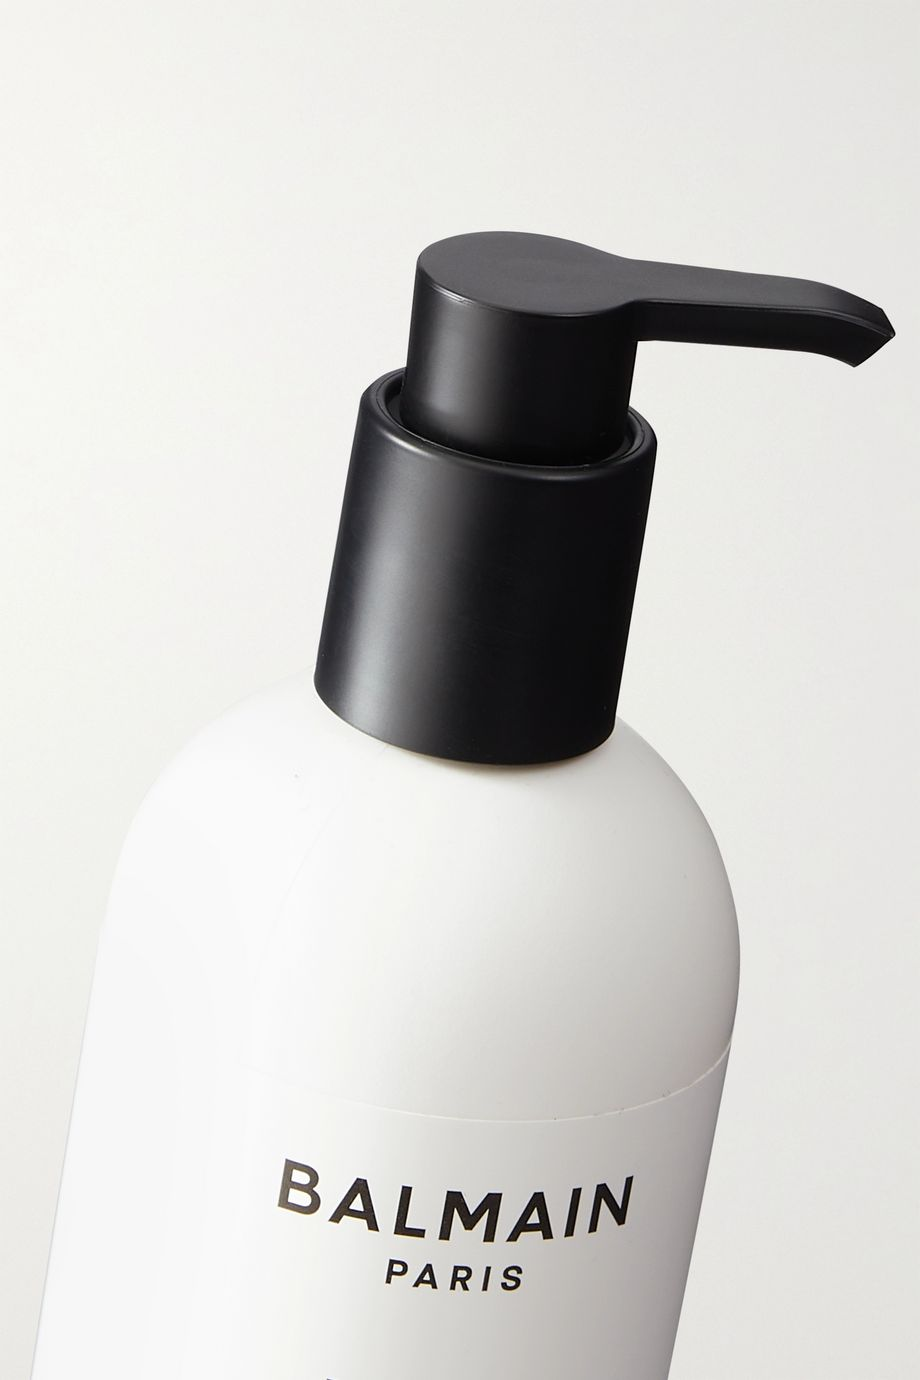 BALMAIN PARIS HAIR COUTURE Illuminating Shampoo - Silver Pearl, 300ml